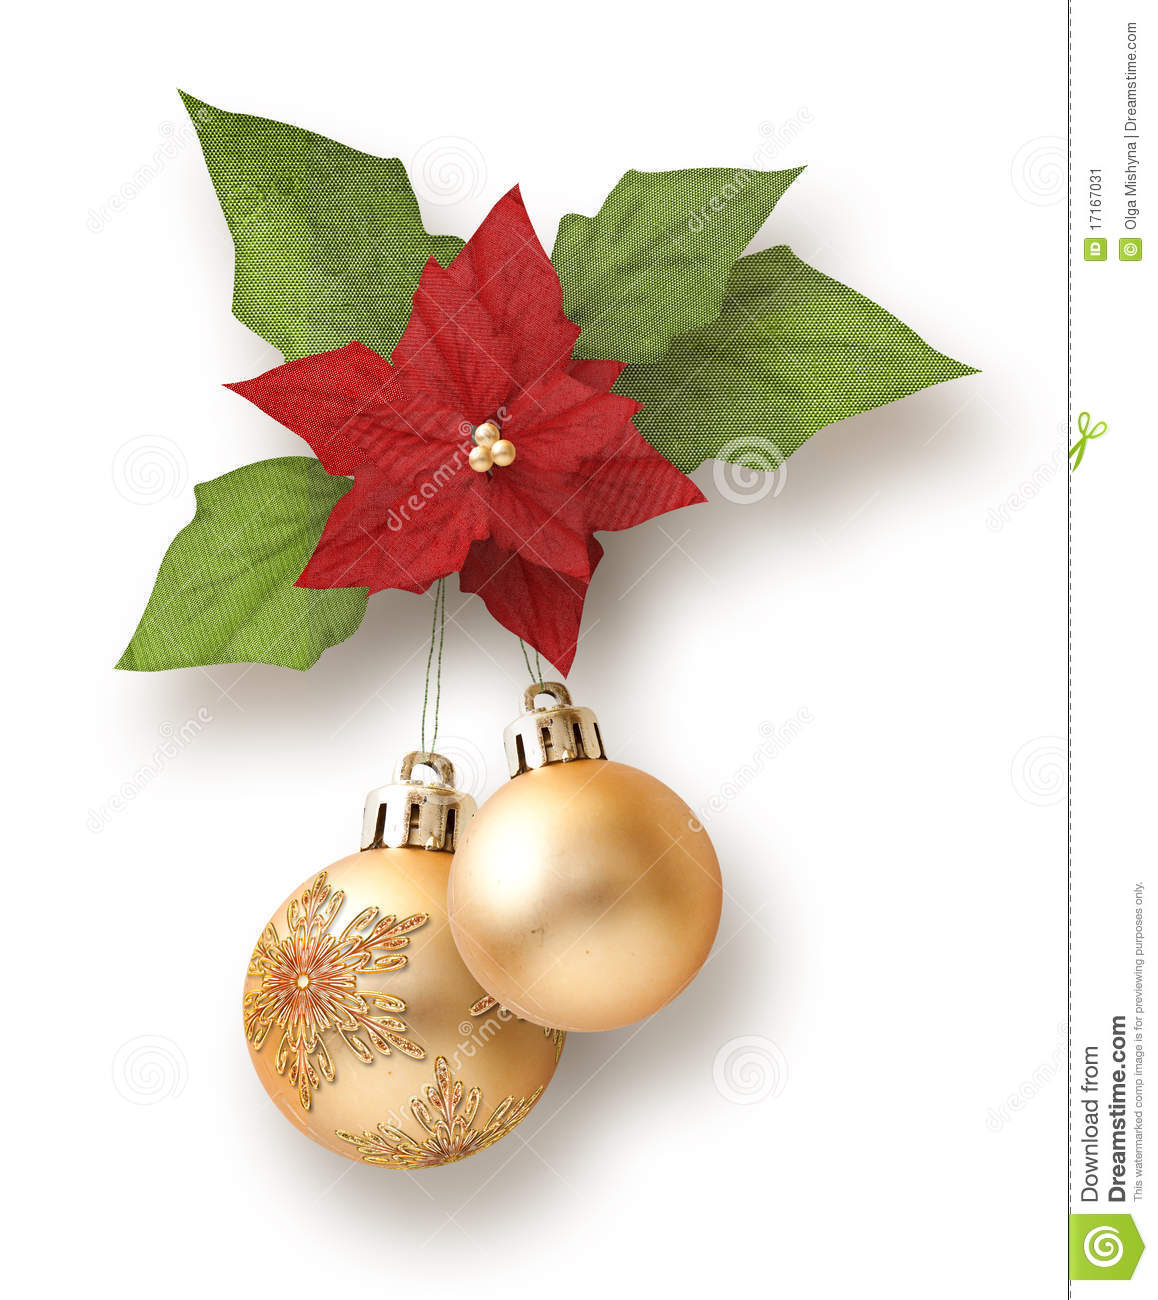 Christmas Garland From Balls With Poinsettia Stock Image - Image ...